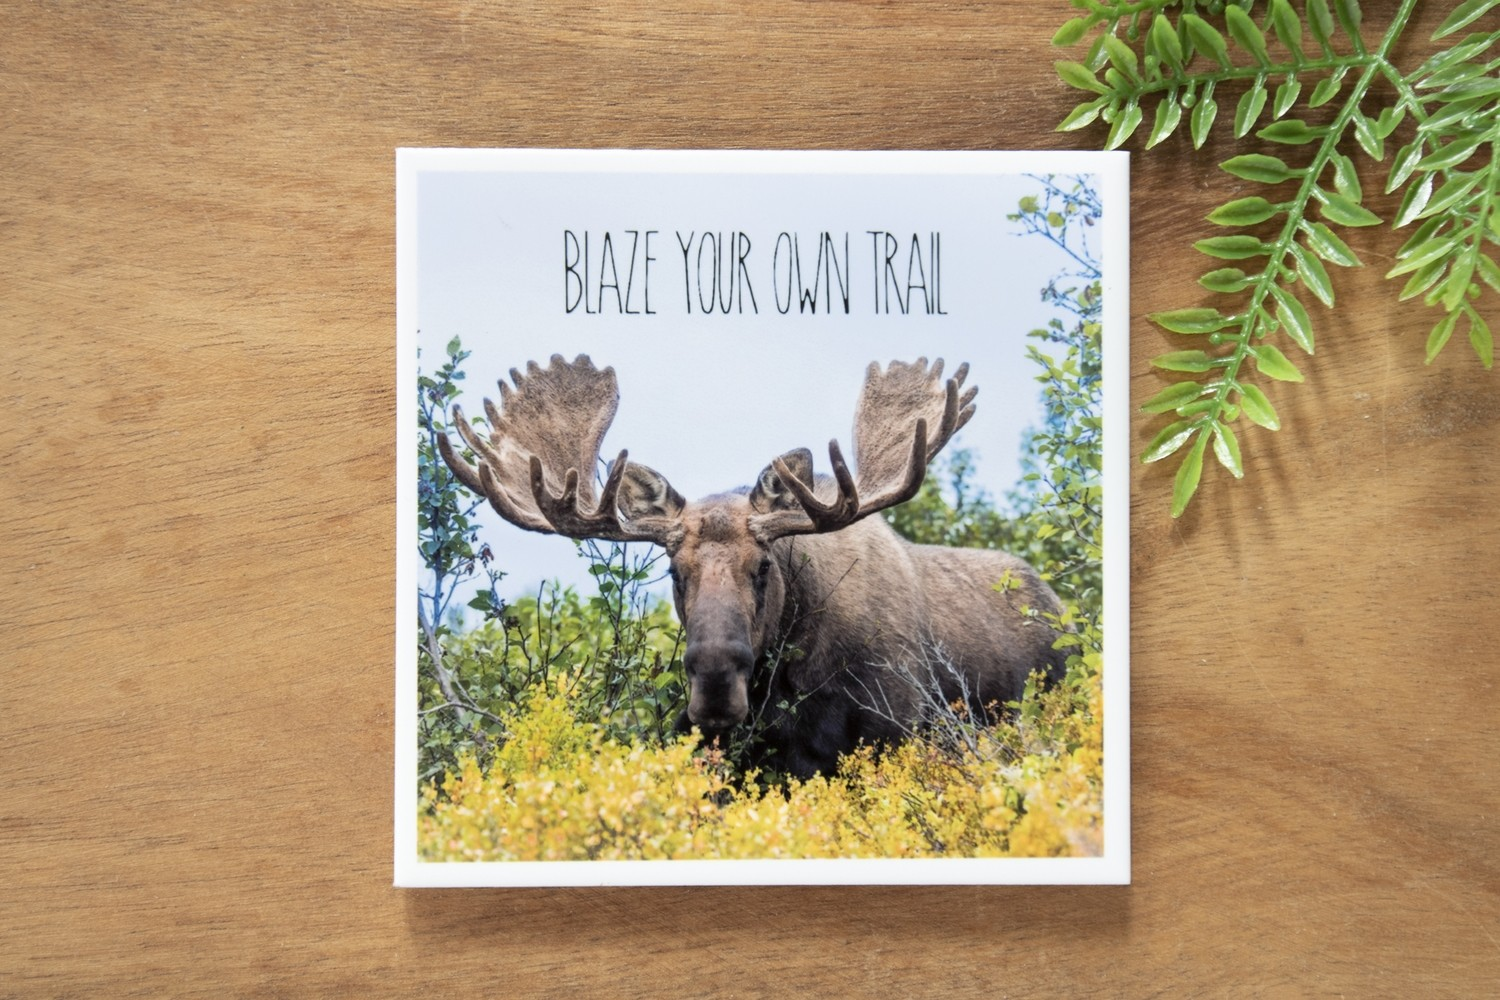 Blaze Your Own Trail-Nature Photo Coaster